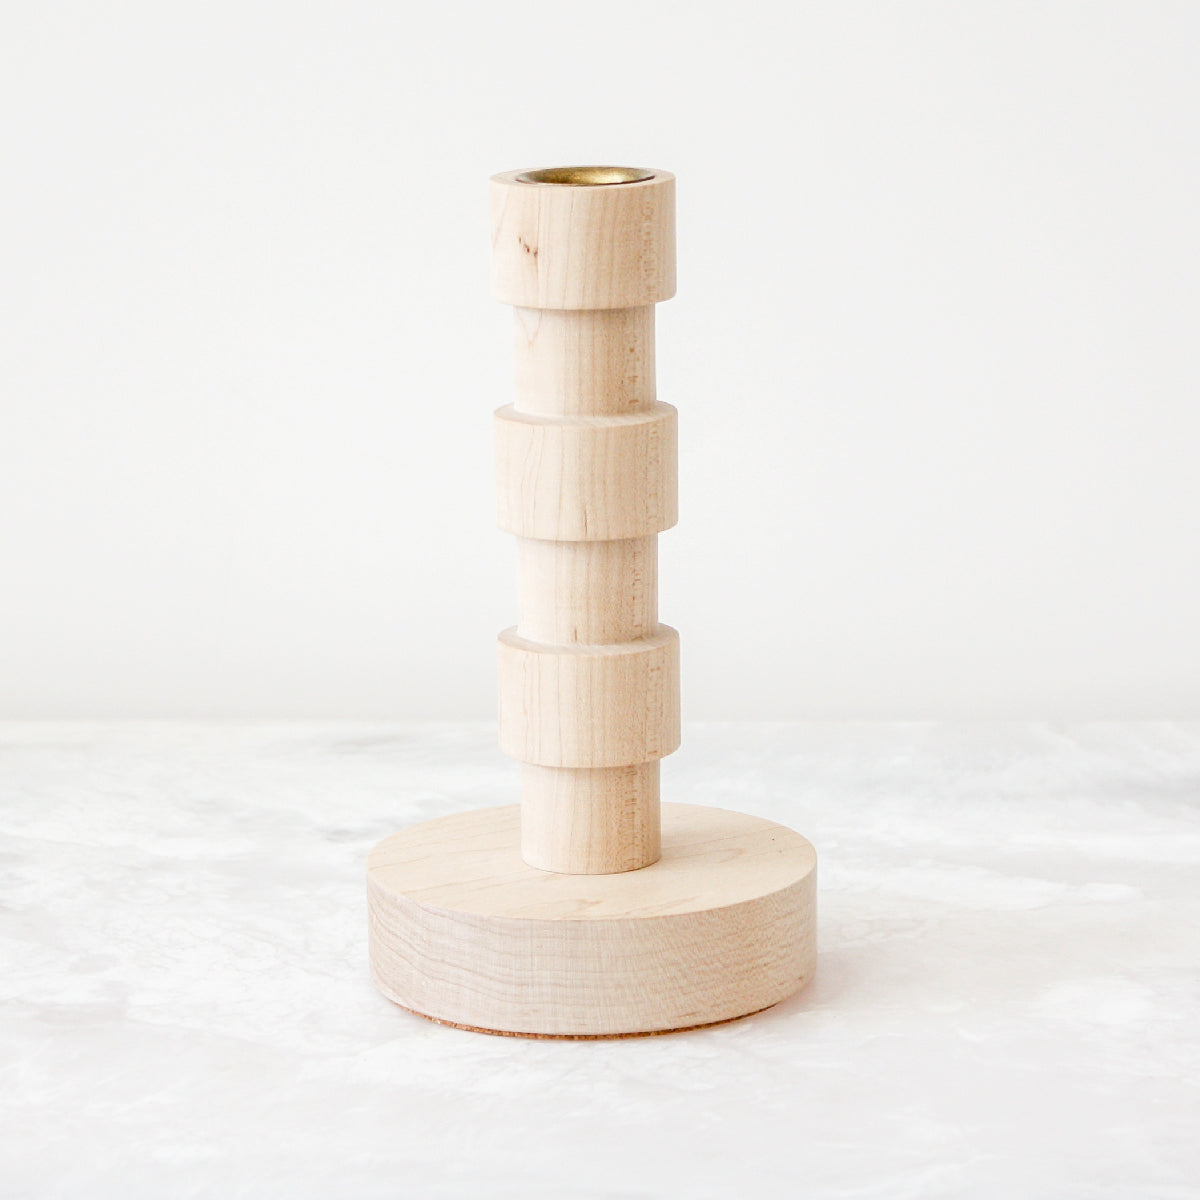 Franc Candle Holder made of maple wood by Lostine